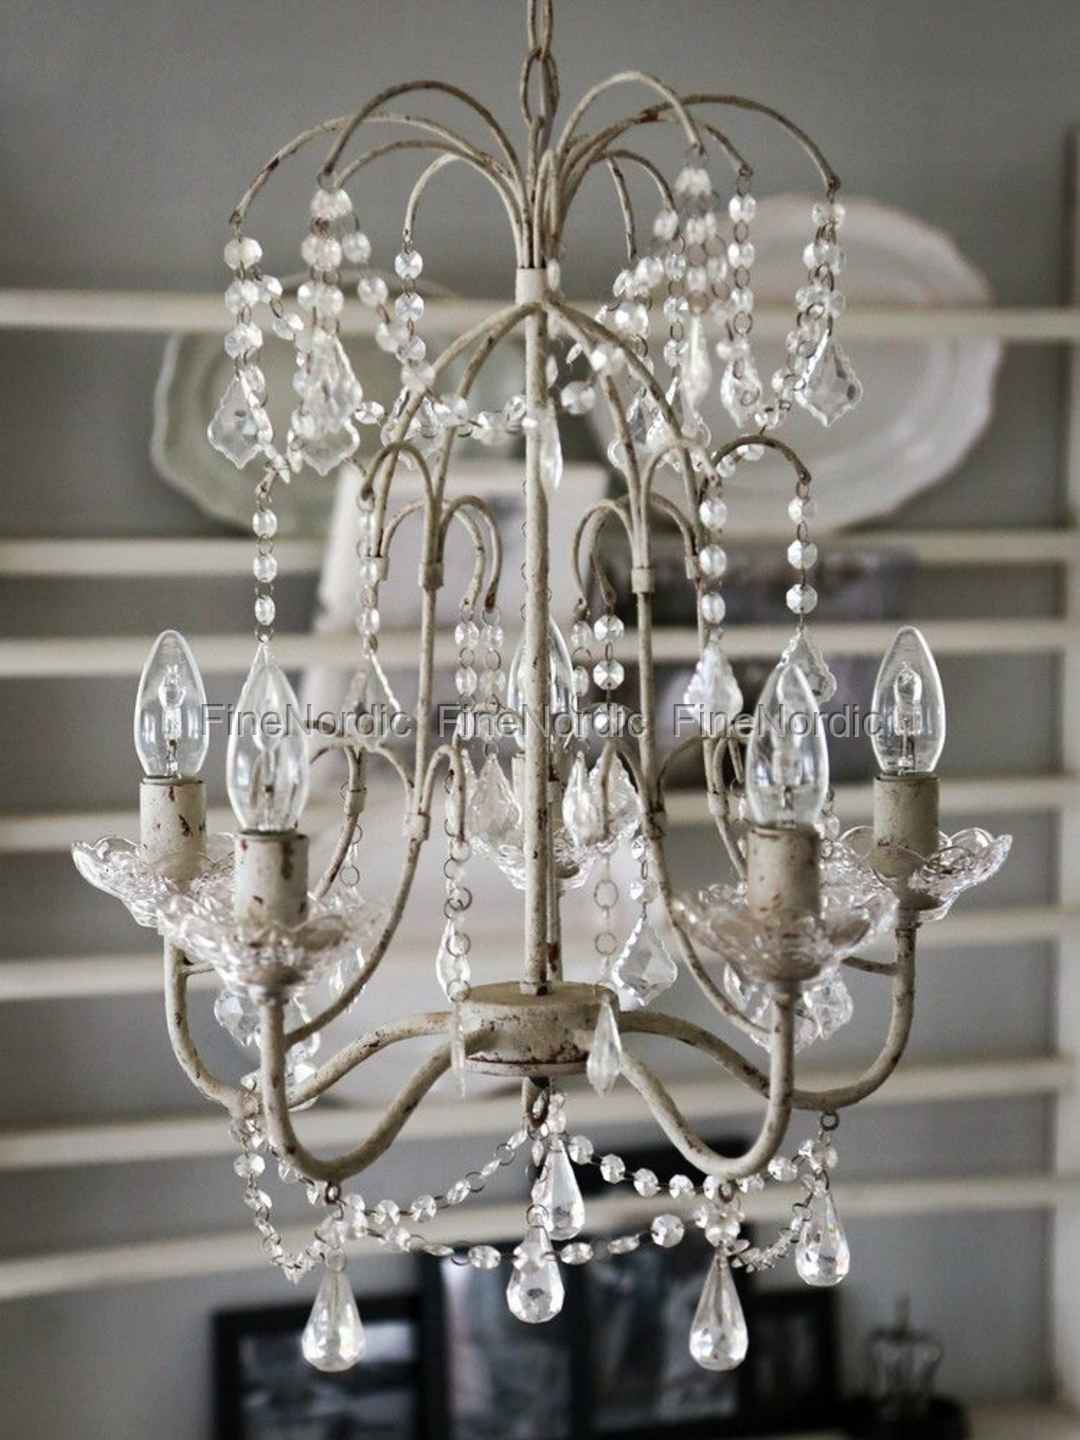 Chic antique chandelier with glass holders and 5 branches antique chic antique chandelier with glass holders and 5 branches antique white aloadofball Images